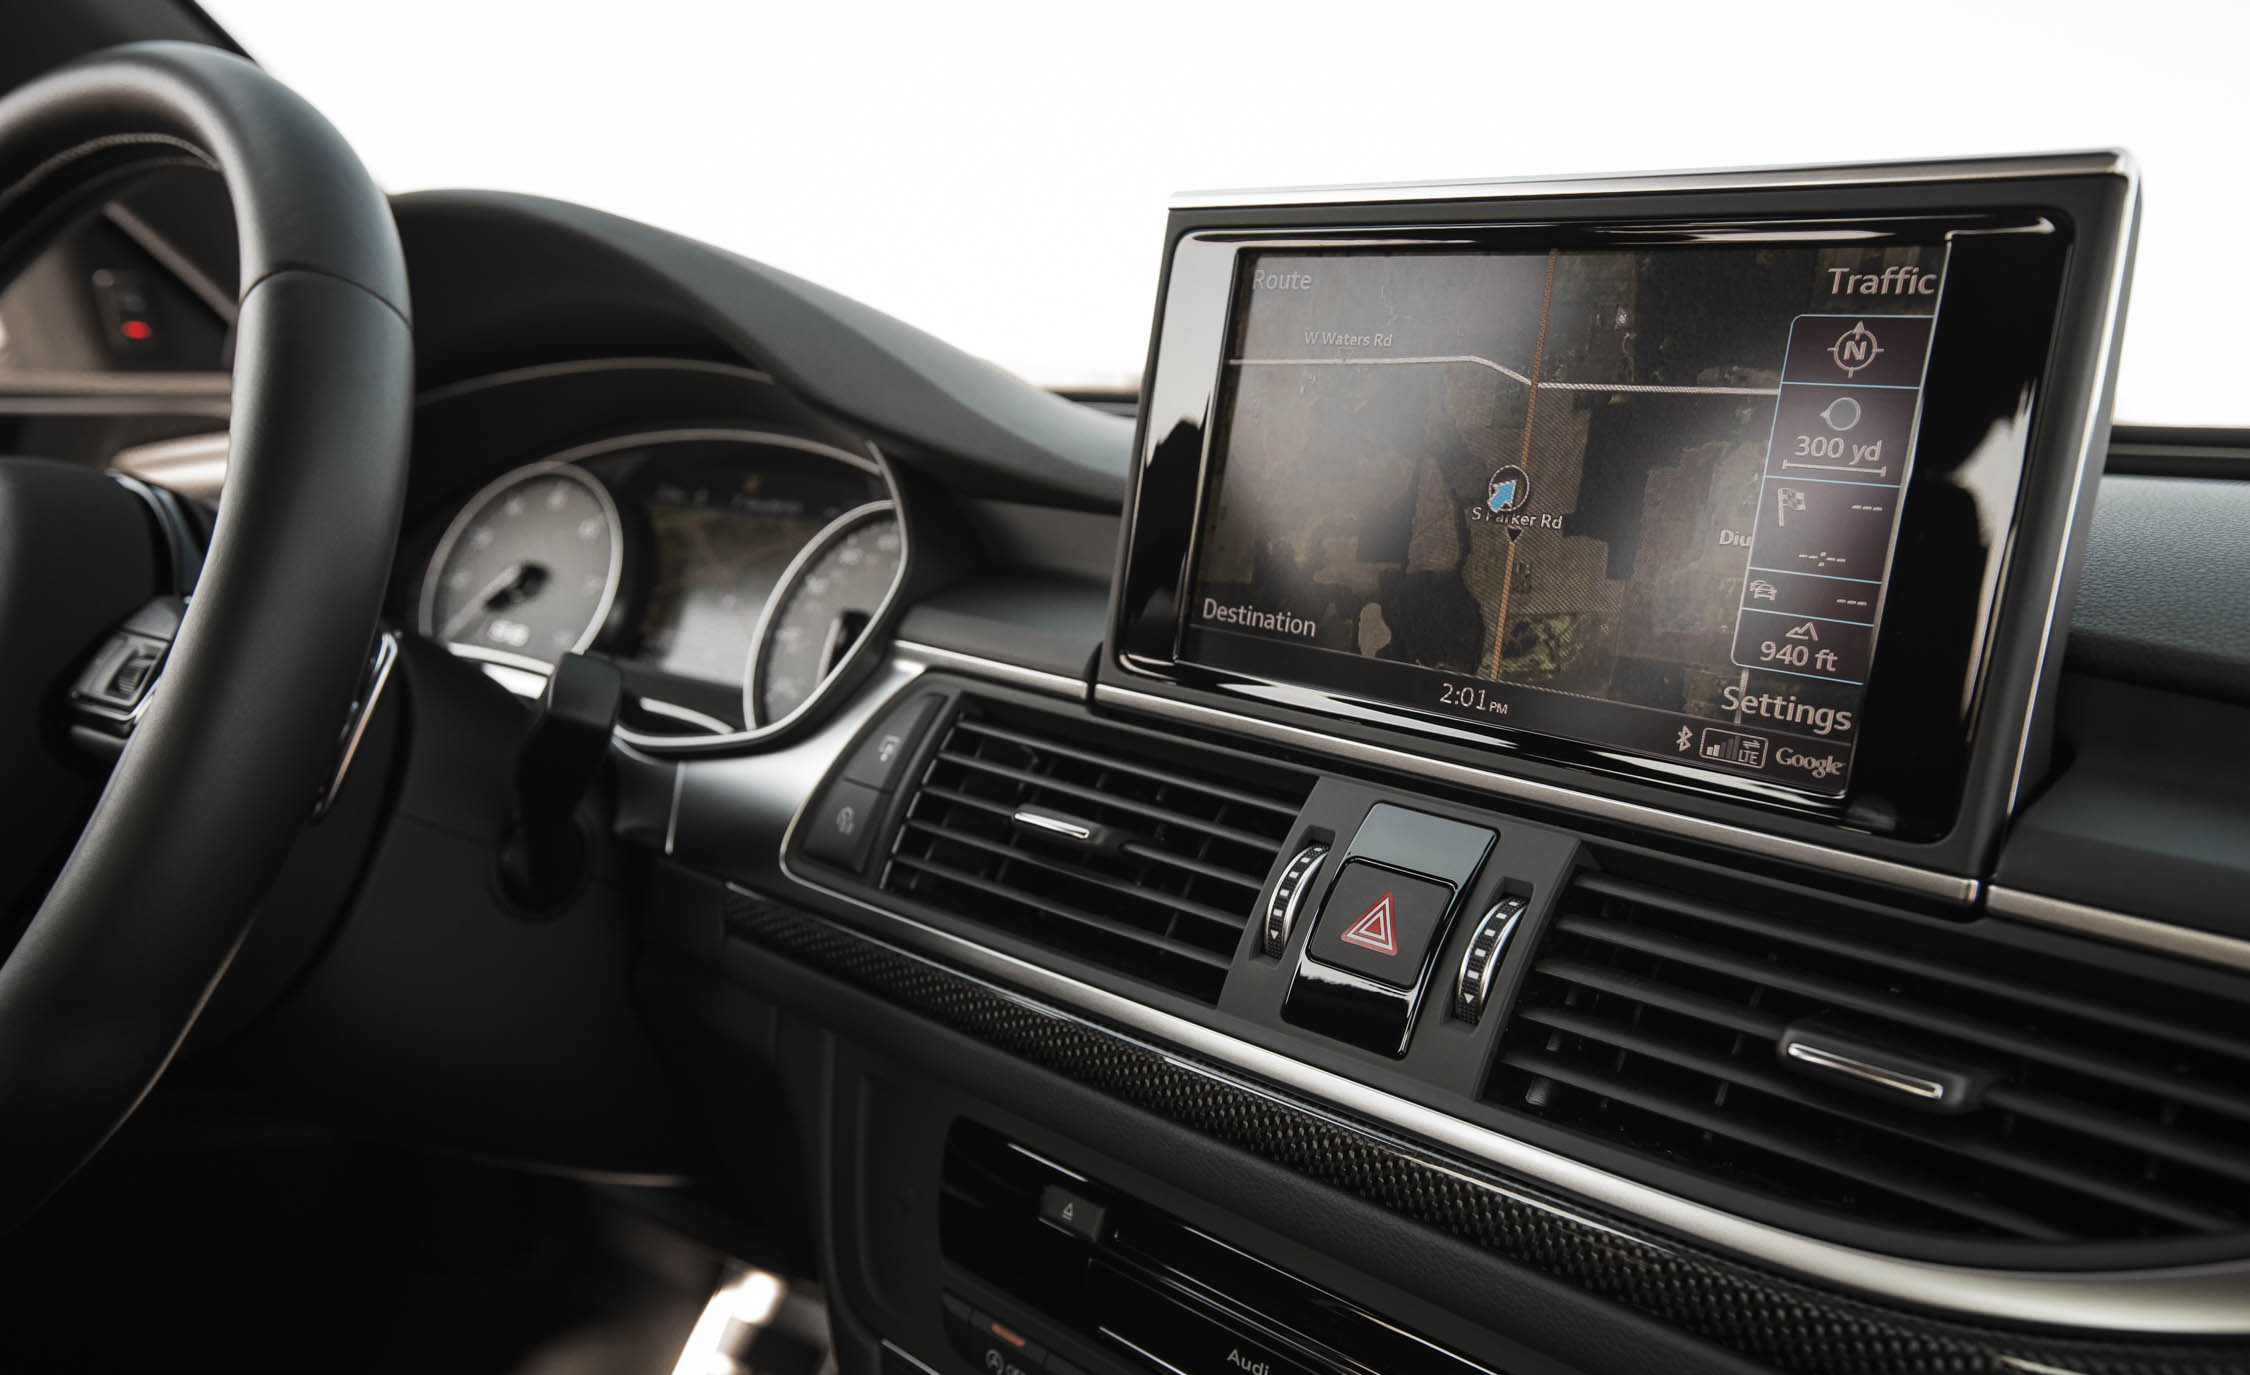 2016 Audi S6 Interior Head Unit Screen